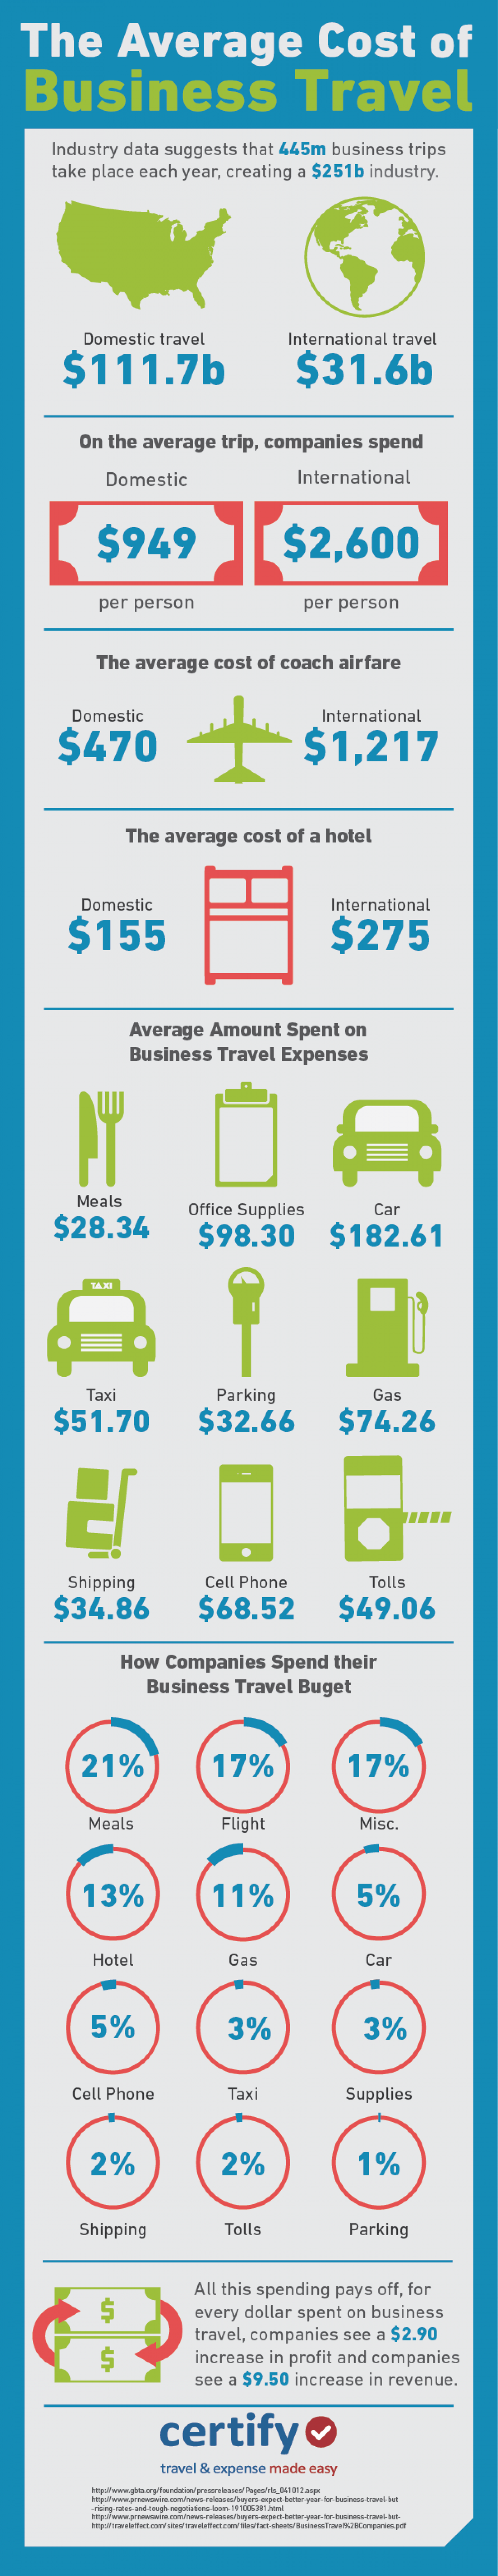 The Average Cost of Business Travel Infographic